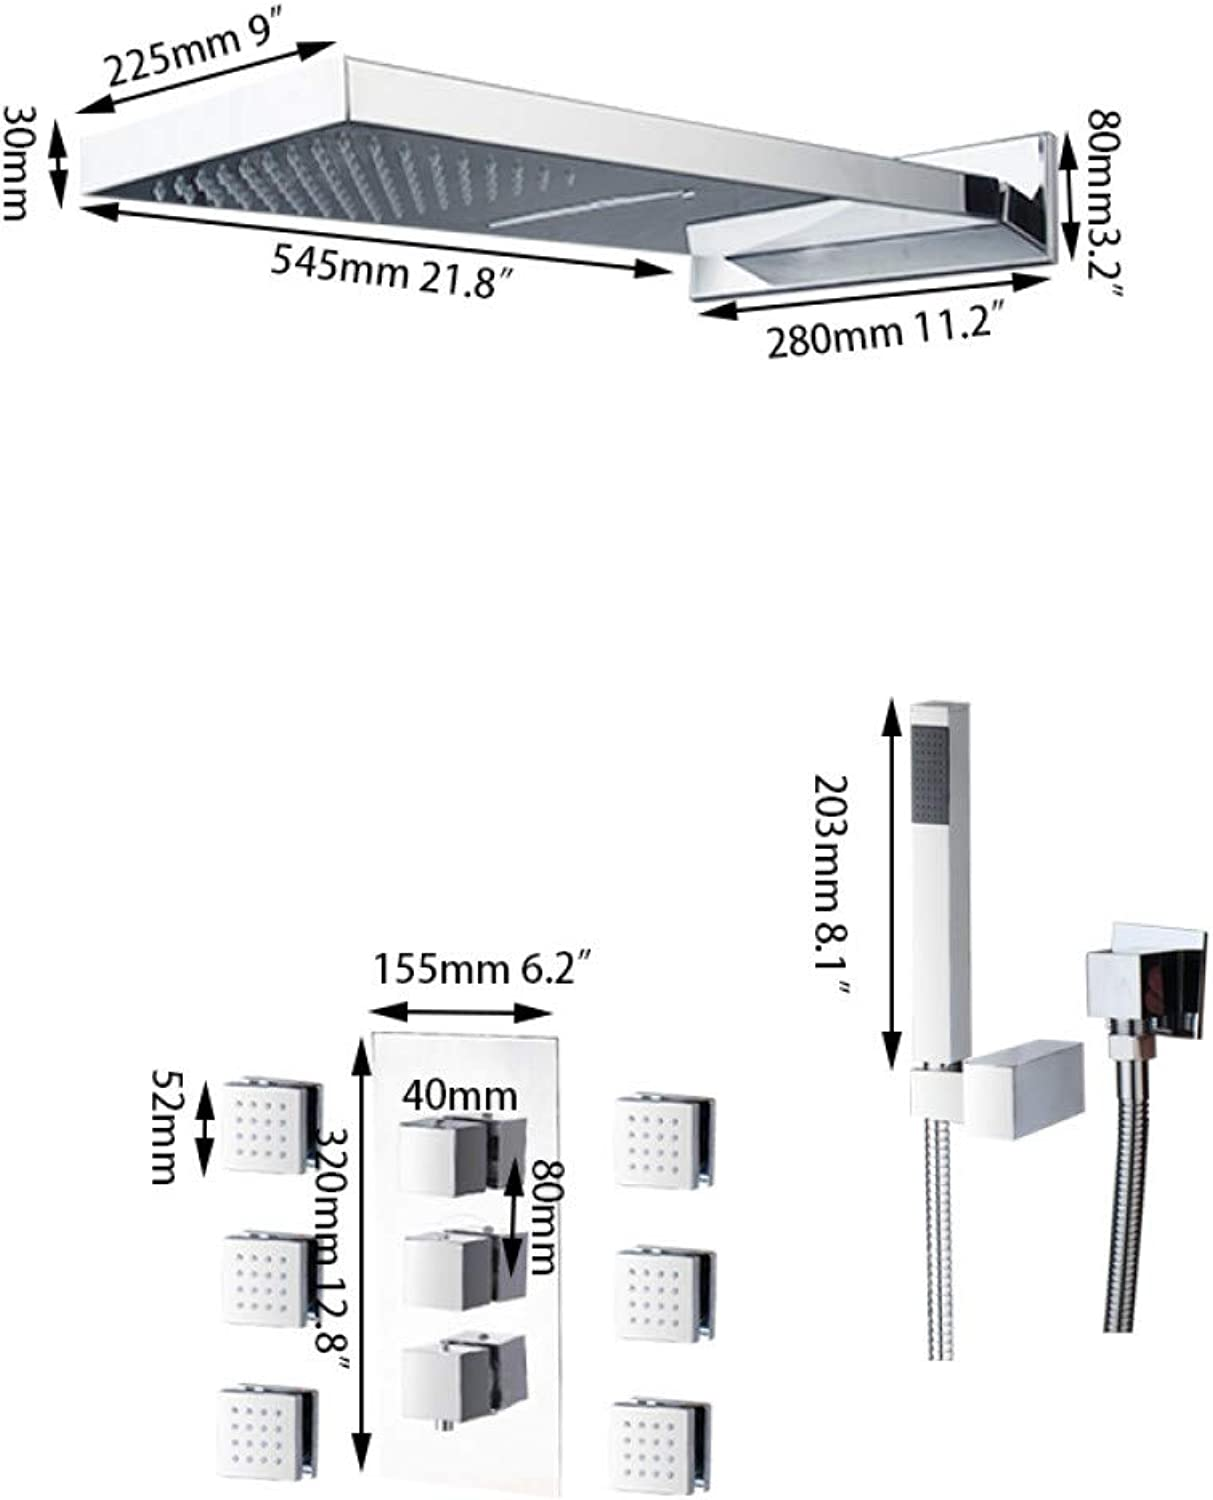 SLTTM Faucet Modern Rainfall Shower Head Luxury Wall Mounted Square Style Brass Waterfall Shower Set New Bathroom Shower with Handle